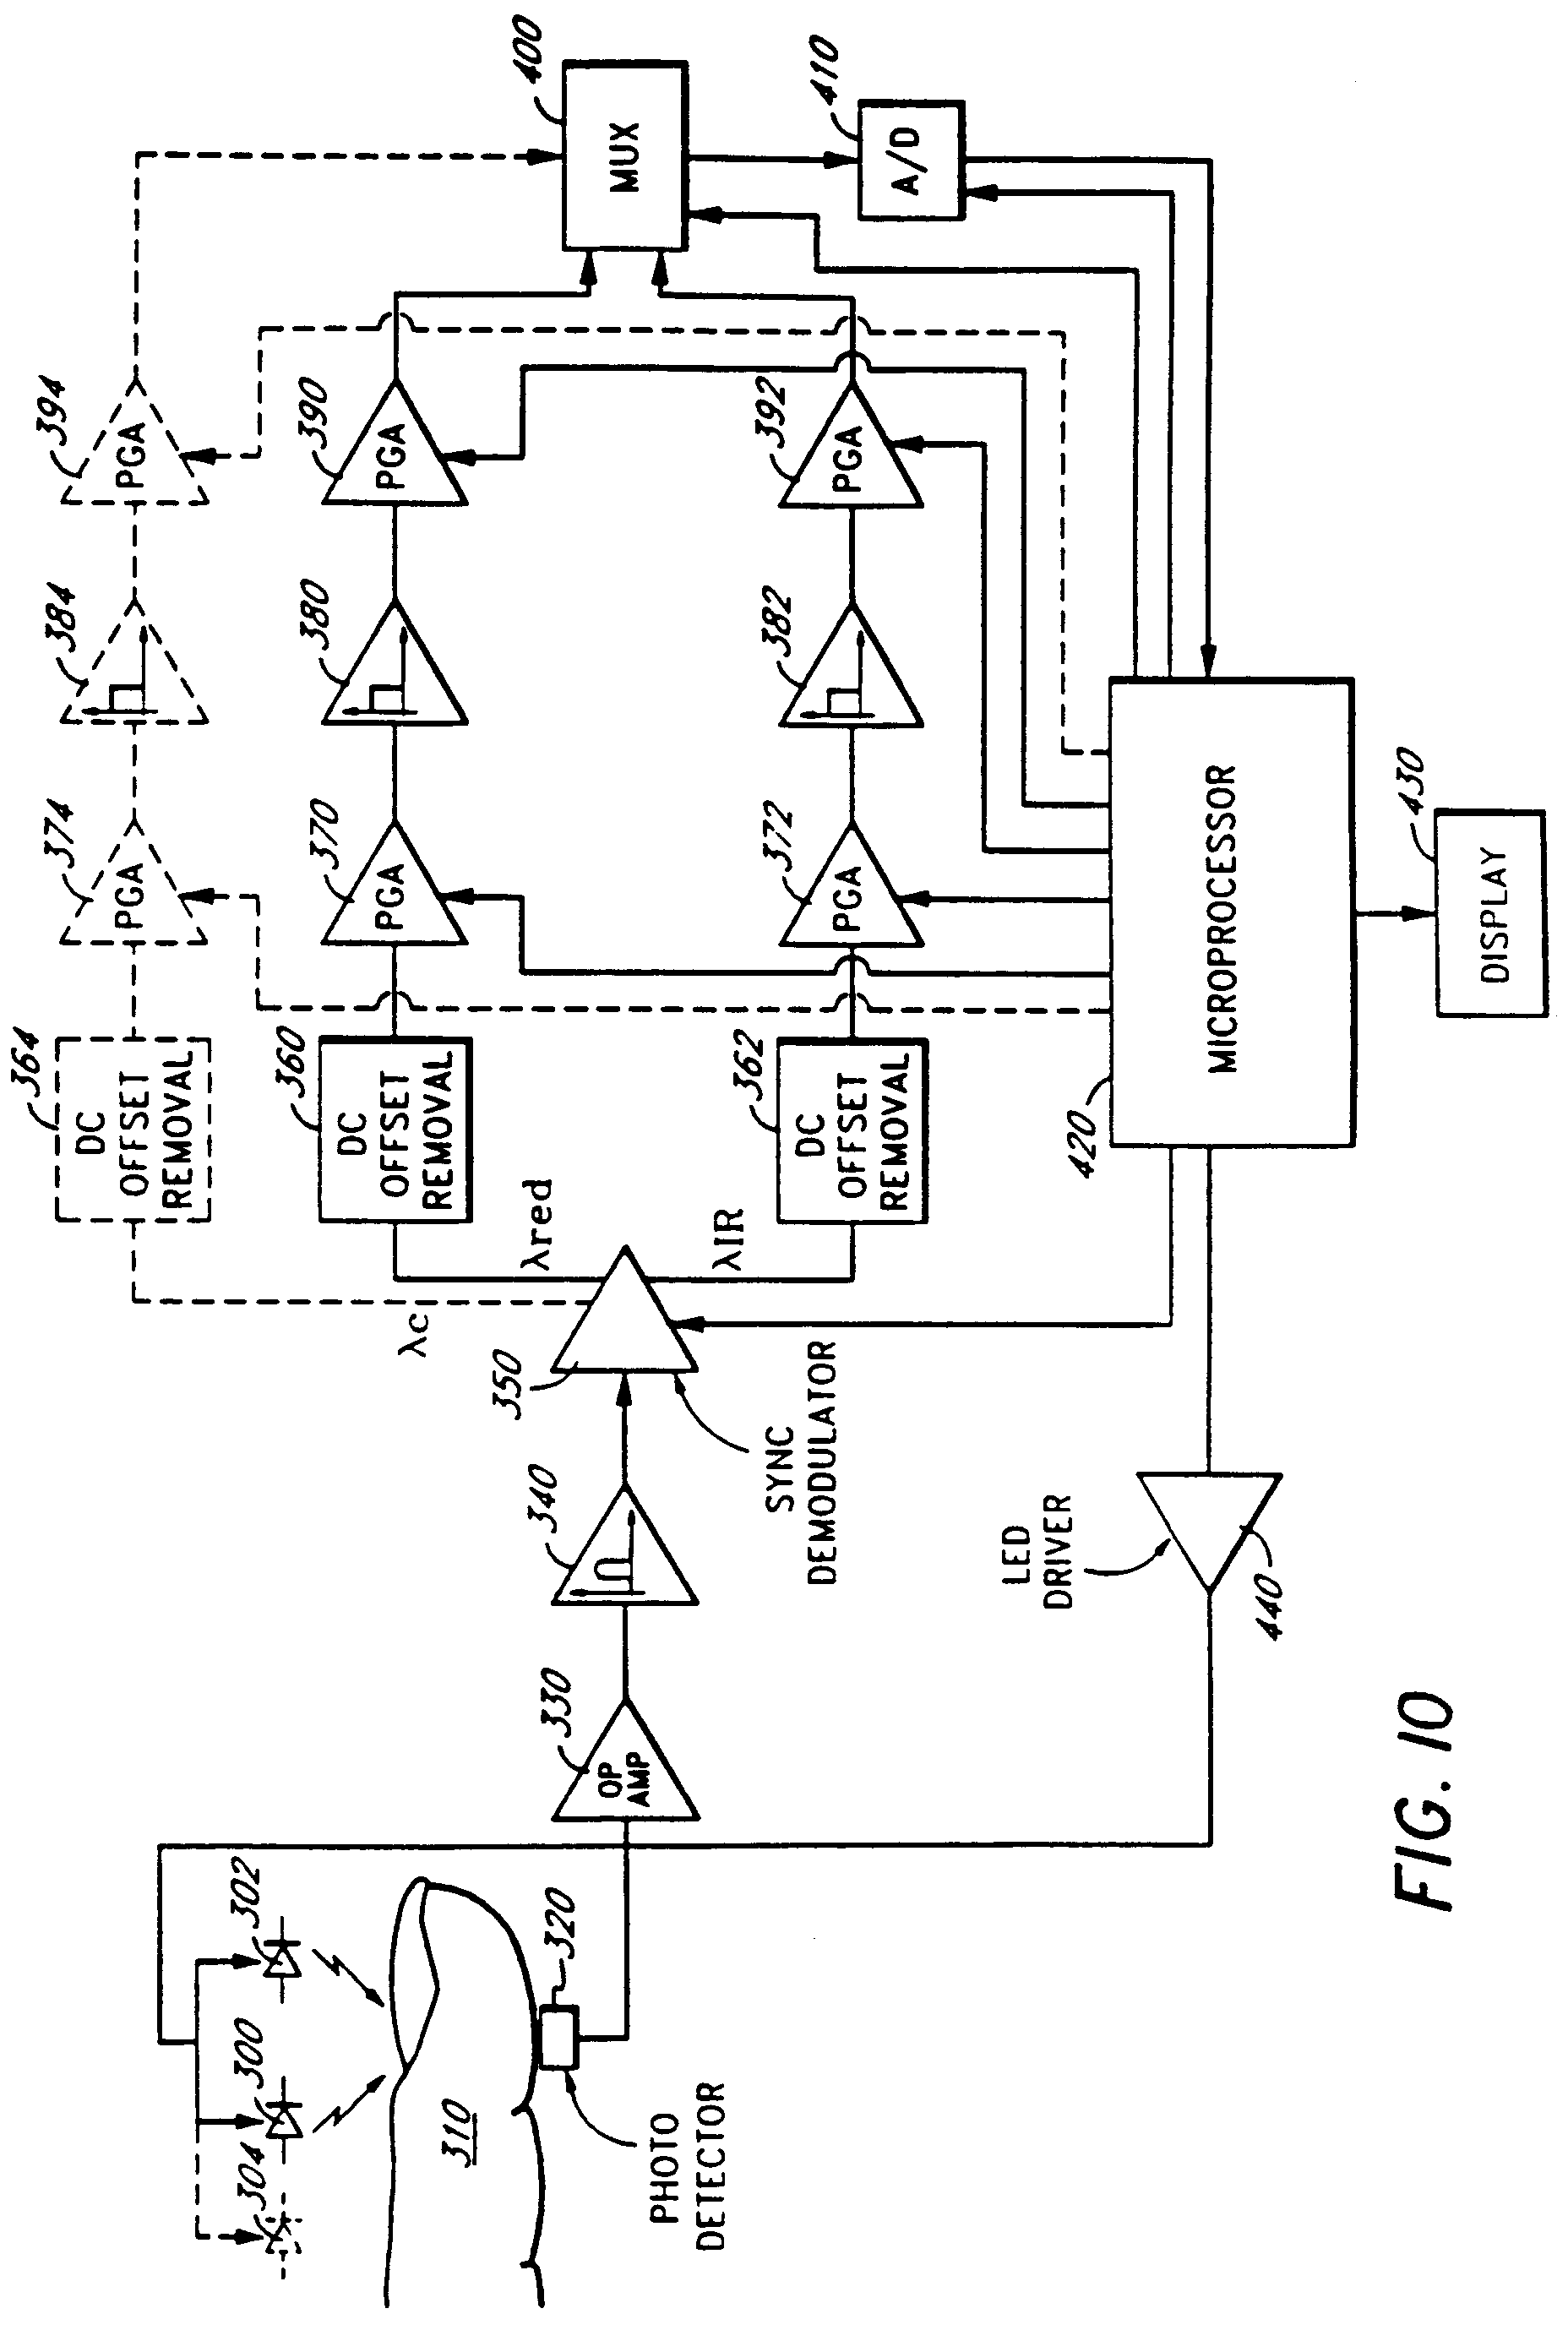 patent ep0930045a2 - signal processing apparatus and method for an oximeter